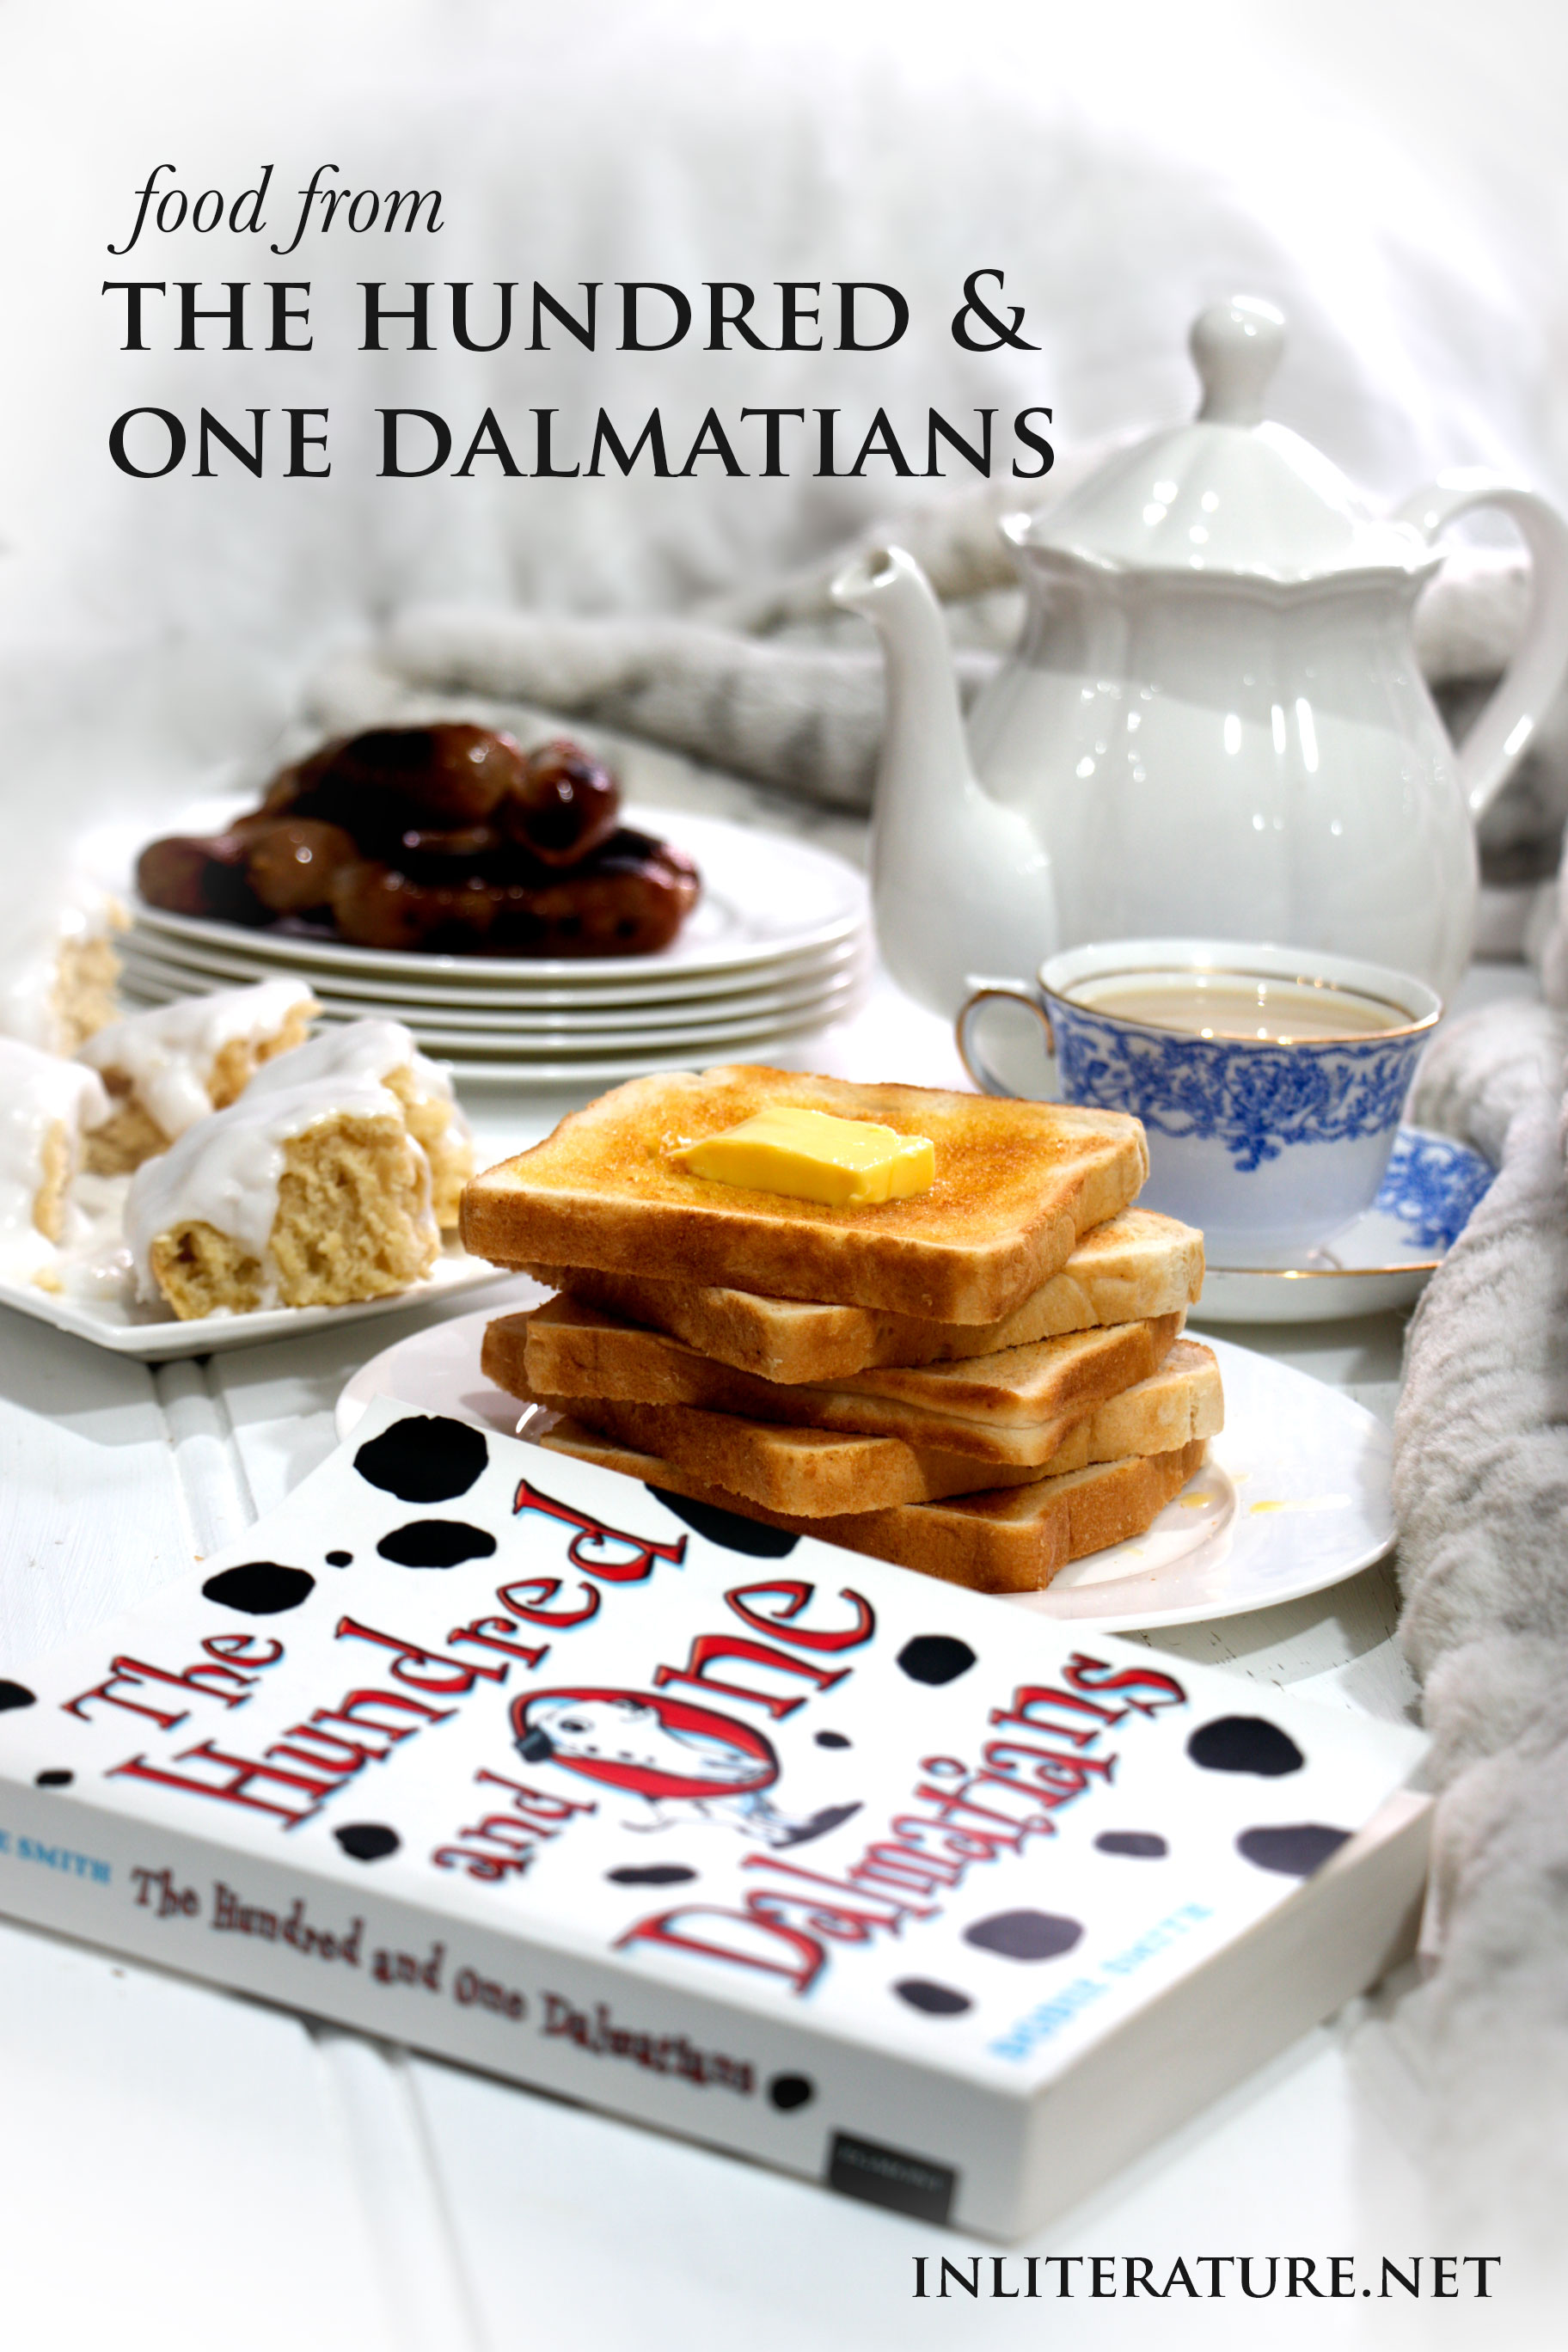 Explore the food mentioned in the novel The Hundred and One Dalmatians